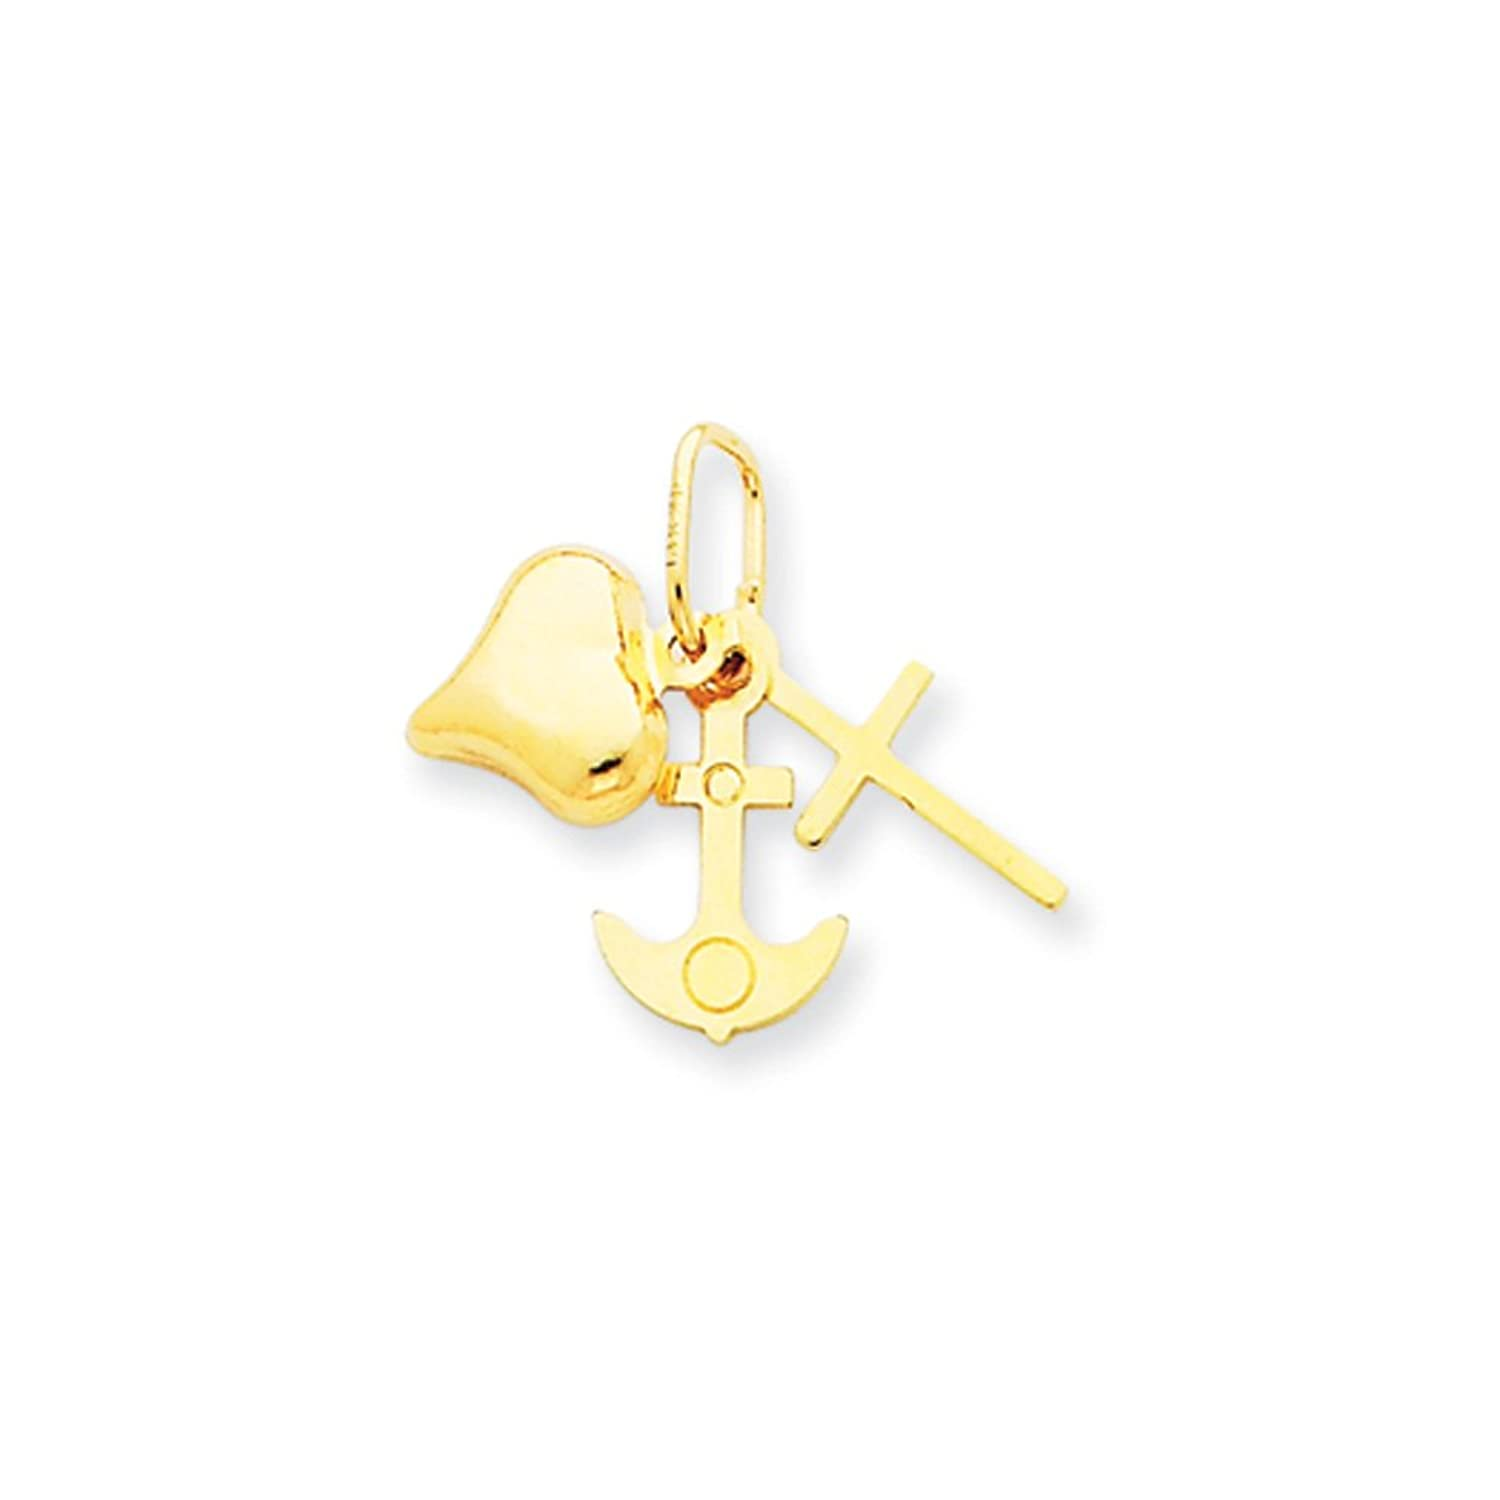 14 Karat Gold, Small Faith, Hope and Charity Charm